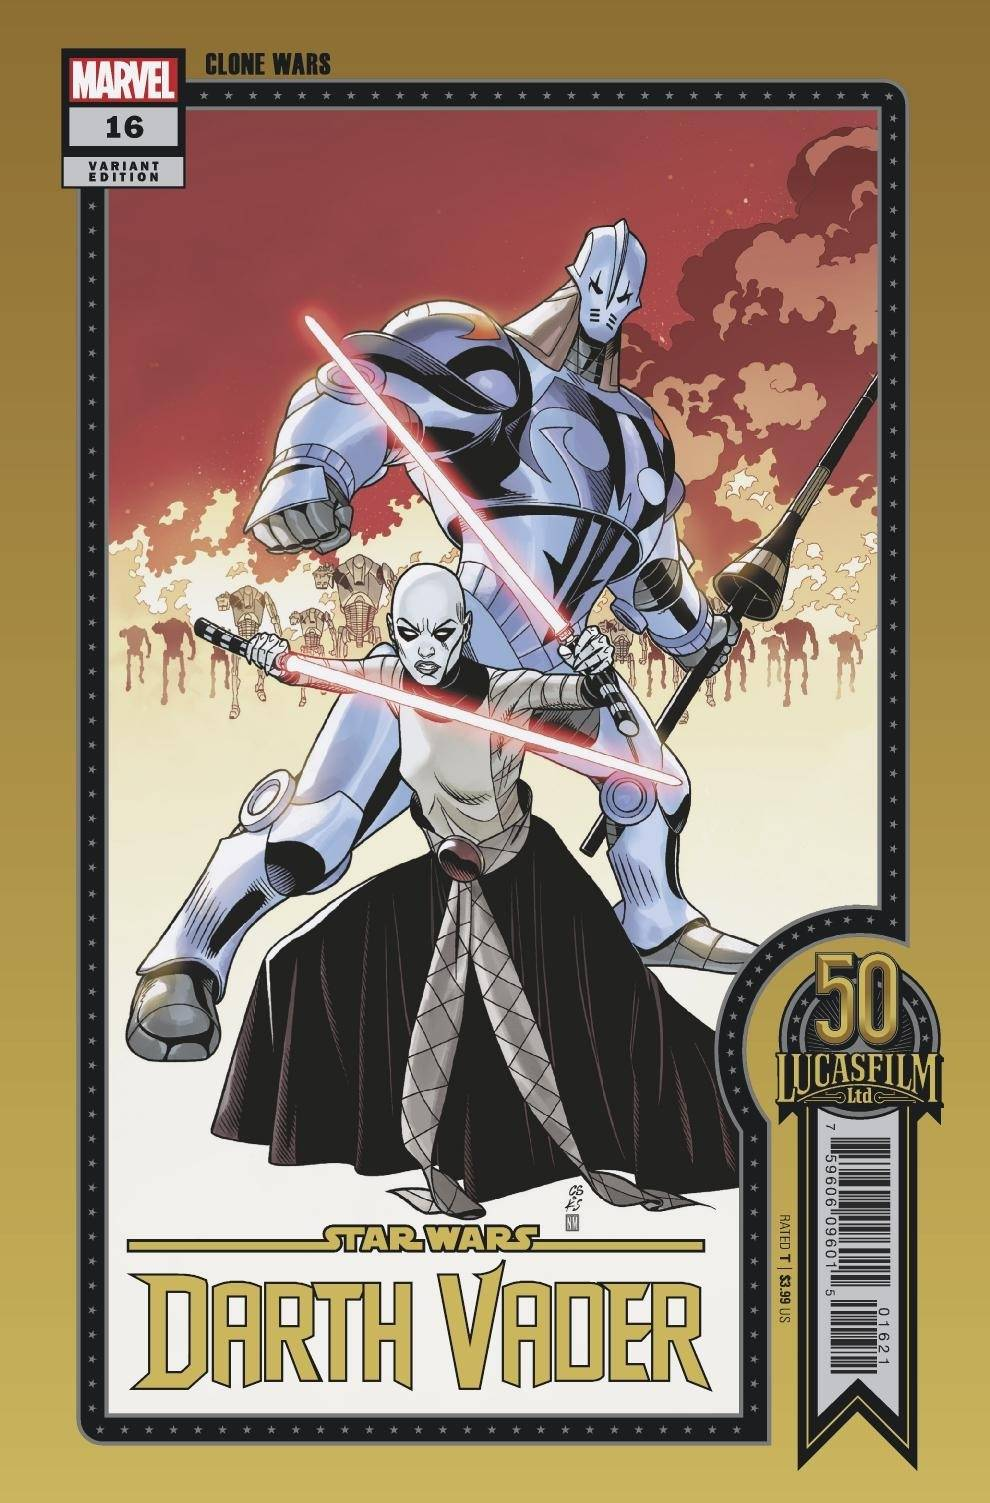 """Darth Vader #16 (Chris Sprouse """"Clone Wars"""" Lucasfilm 50th Anniversary Variant Cover) (15.09.2021)"""